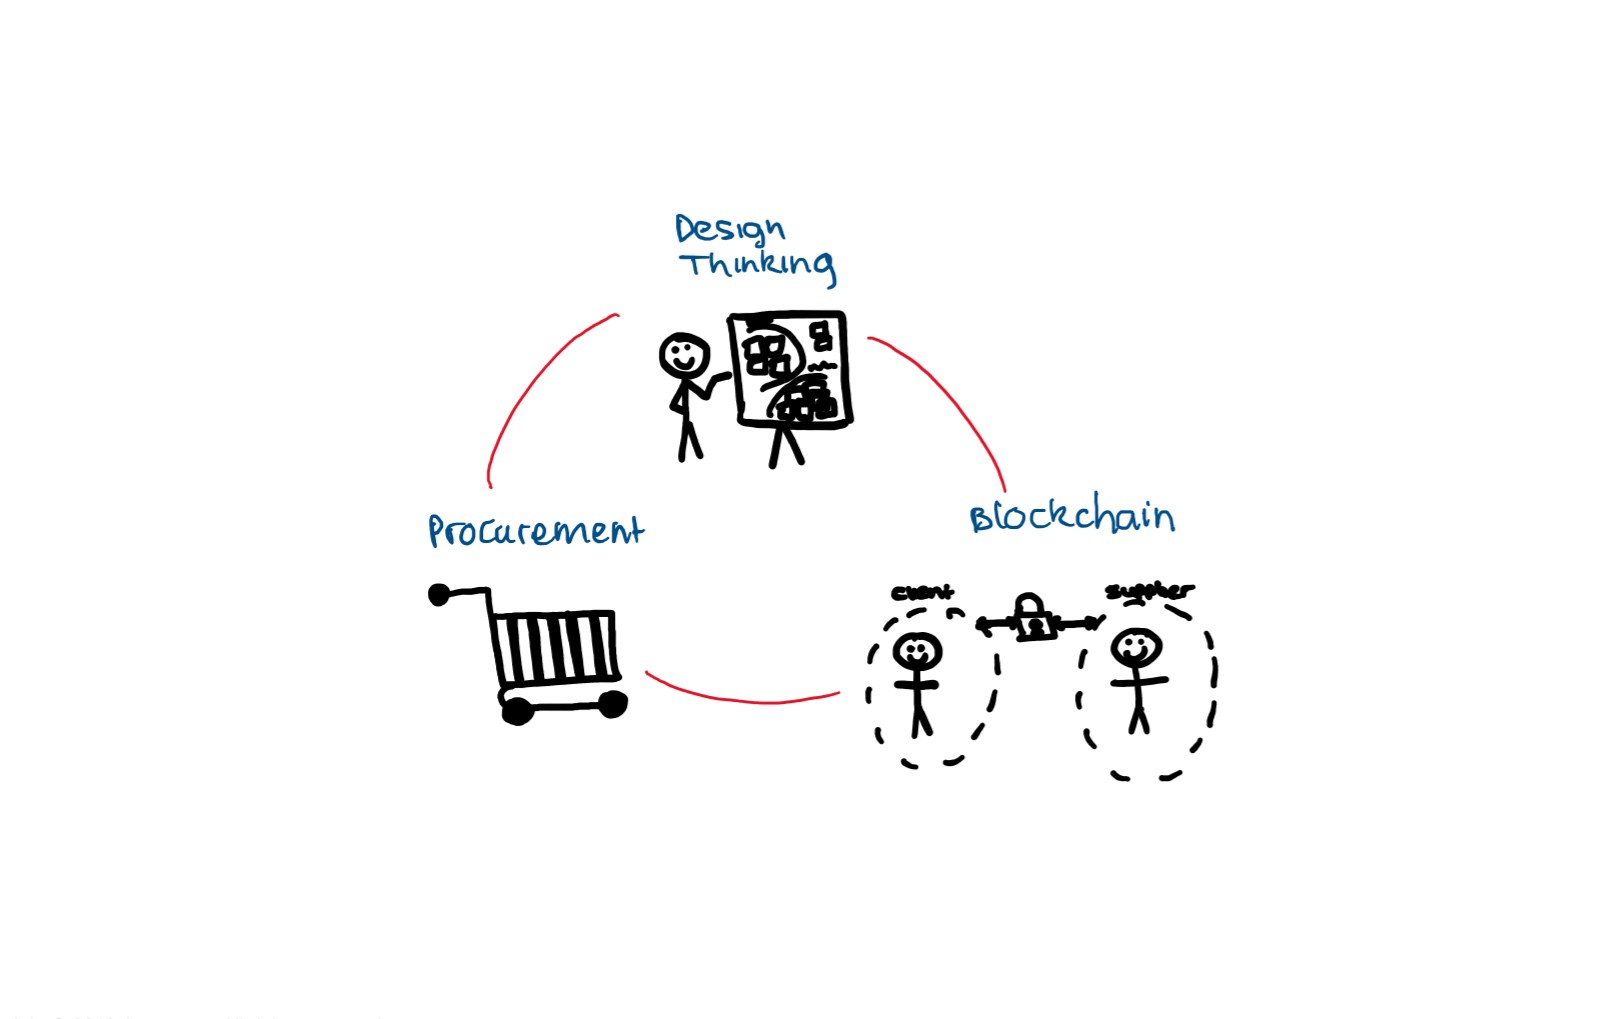 Design Thinking To Explore Blockchain In Procurement